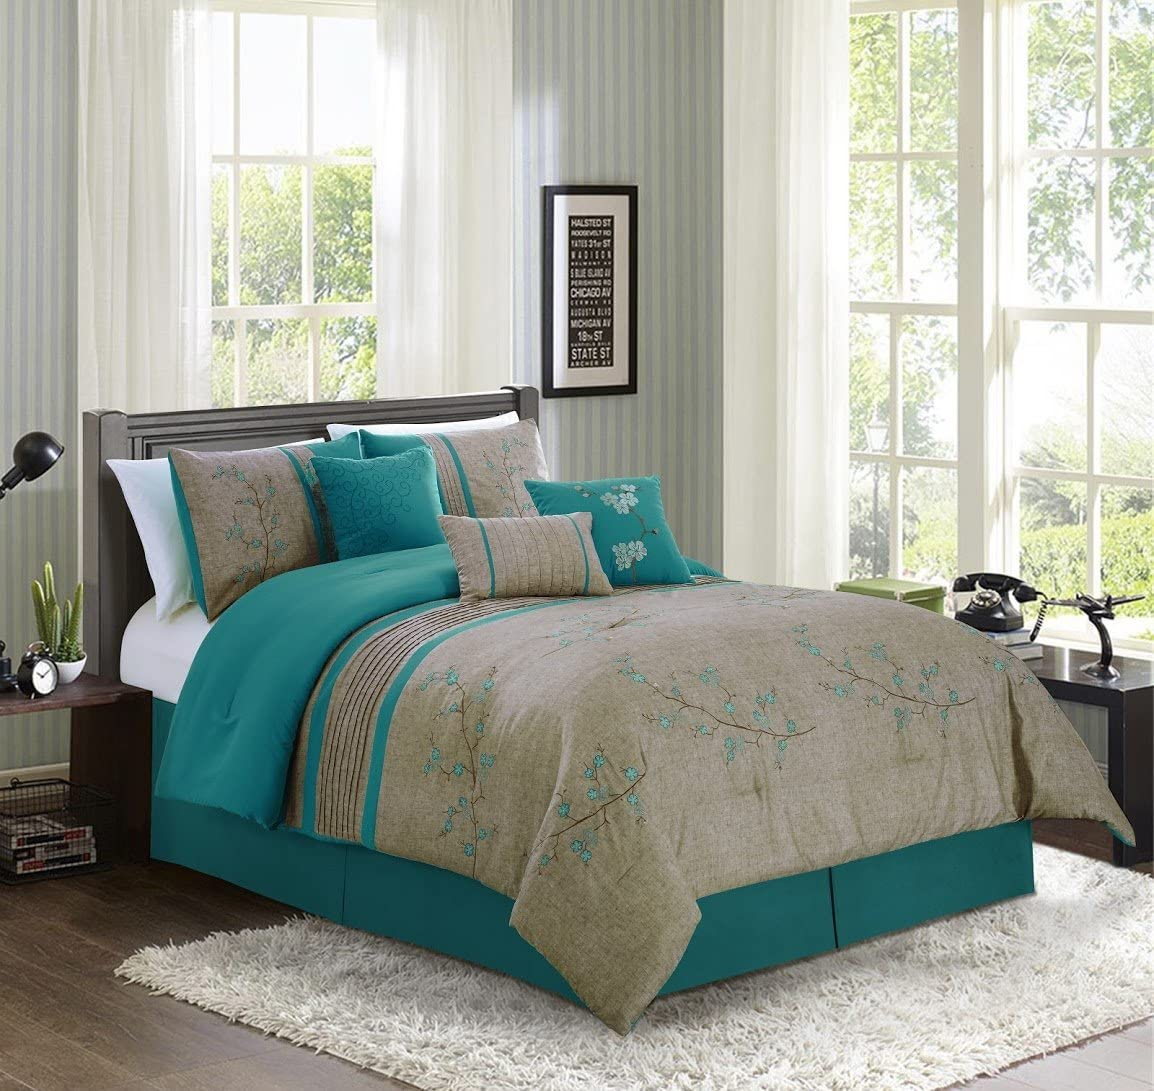 Chezmoi Collection Noriko Luxury 7-Piece Teal Cherry Blossoms Floral Embroidery Bedding Comforter Set (Queen